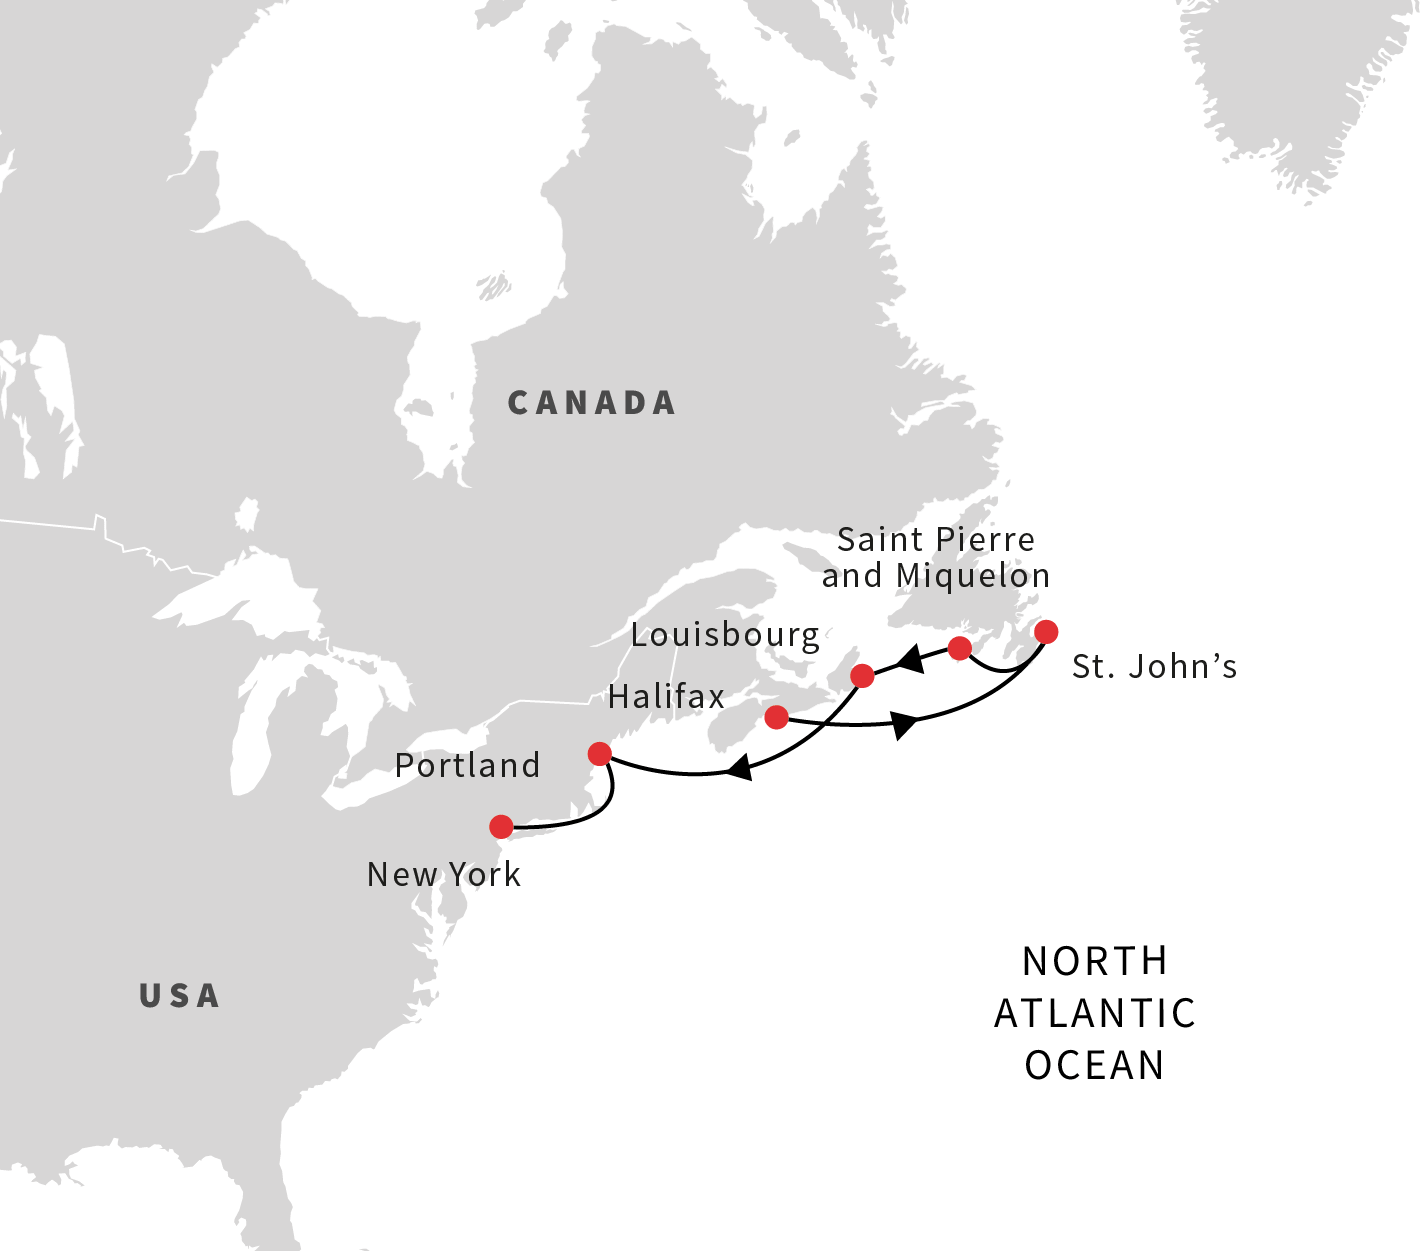 North America Cruises Exploring from the Canadian Maritimes to